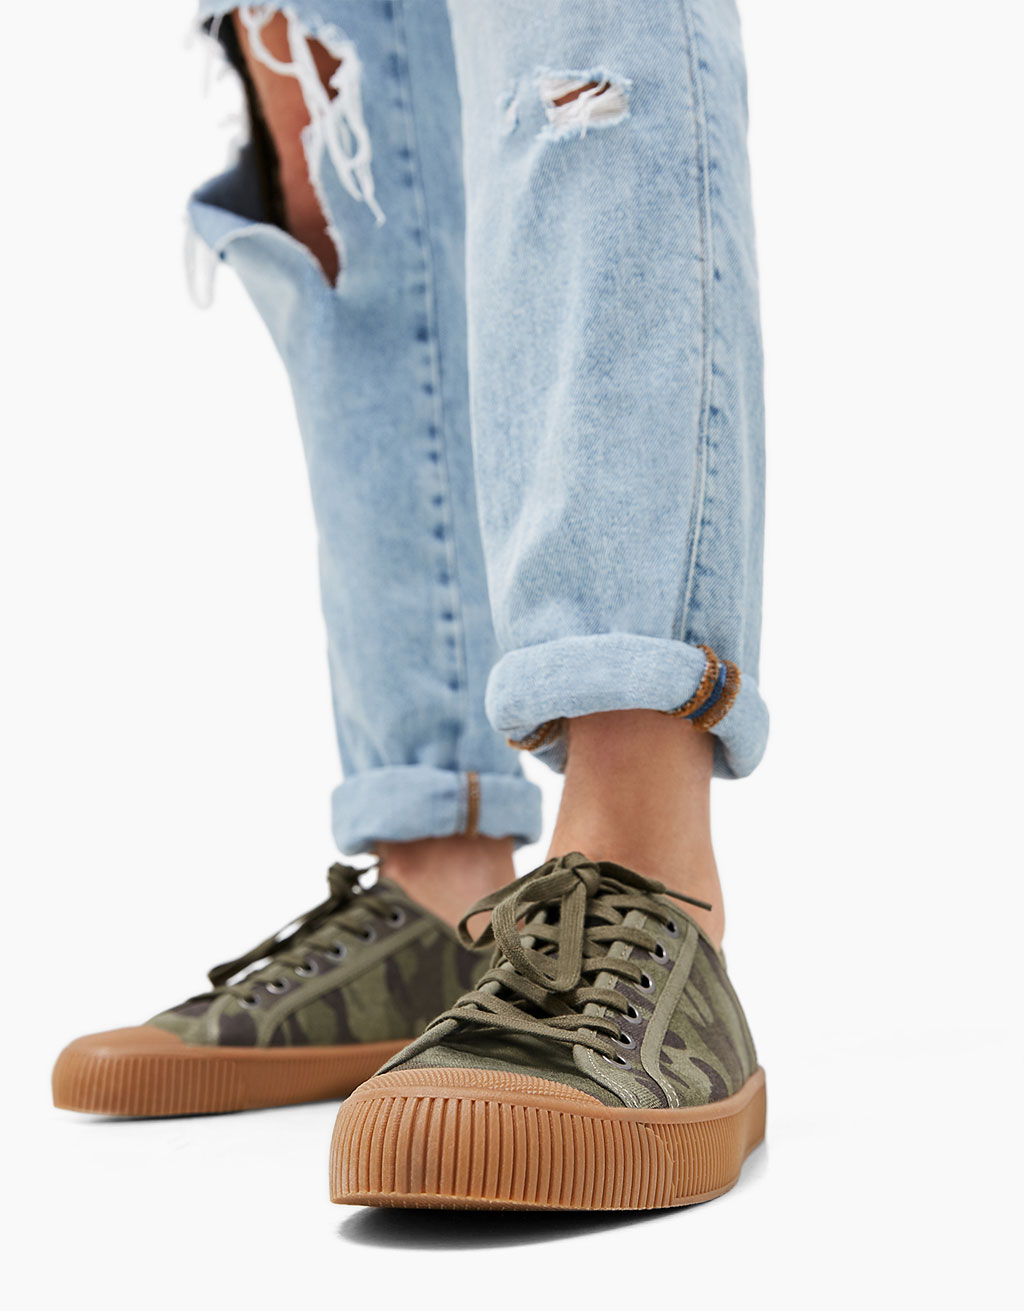 Men's camouflage print canvas sneakers with rubber toe